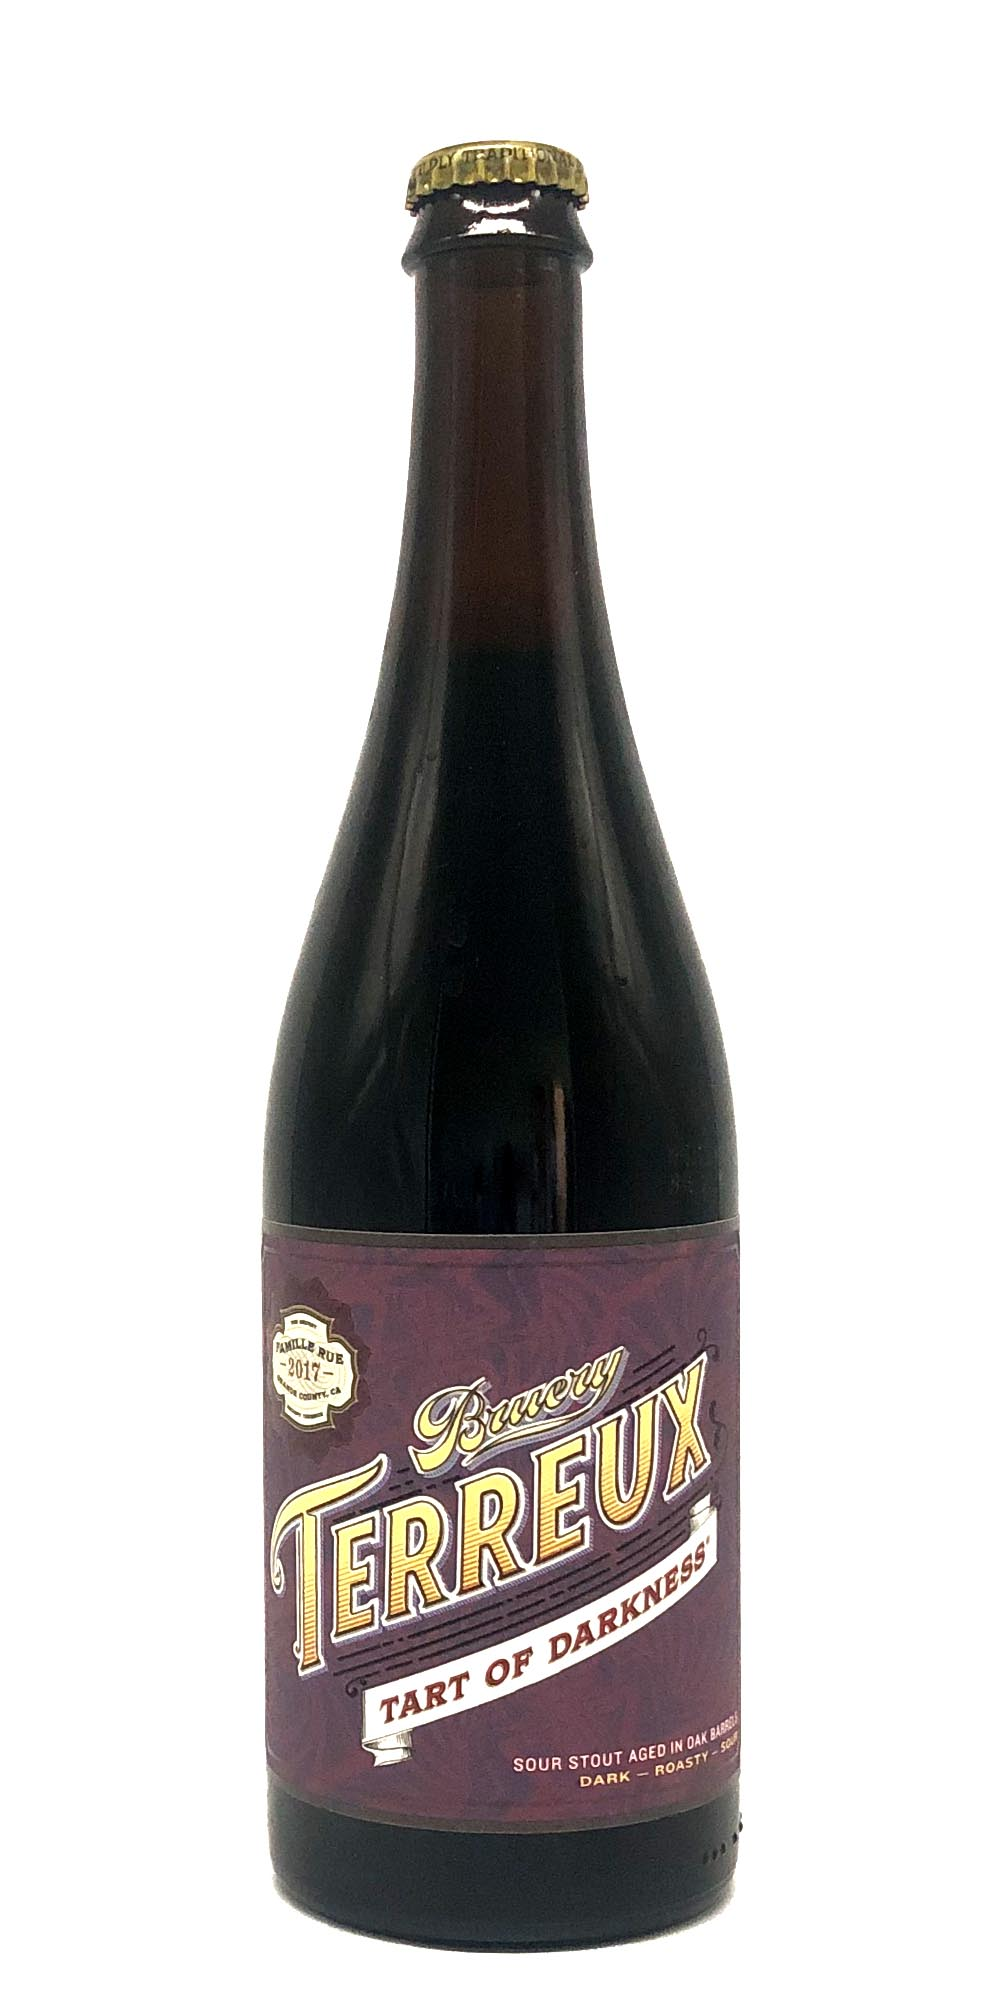 The Bruery - Tart of Darkness - Drikbeer - Order Craft Beer Online